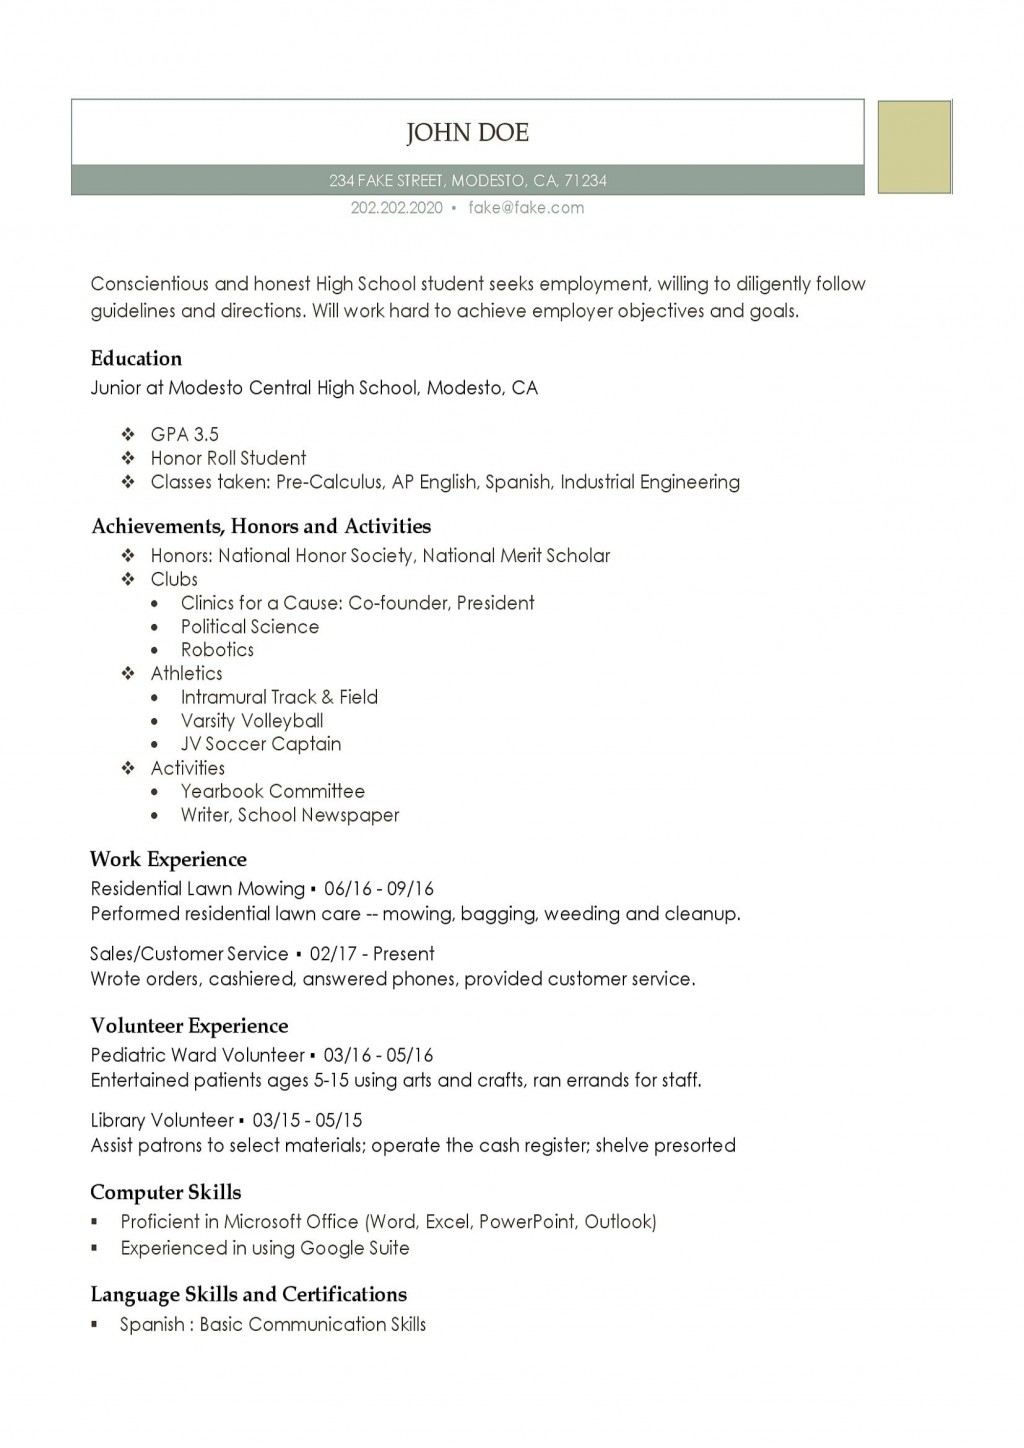 002 Incredible Student Resume Template Word Image  High School Free College Microsoft DownloadLarge